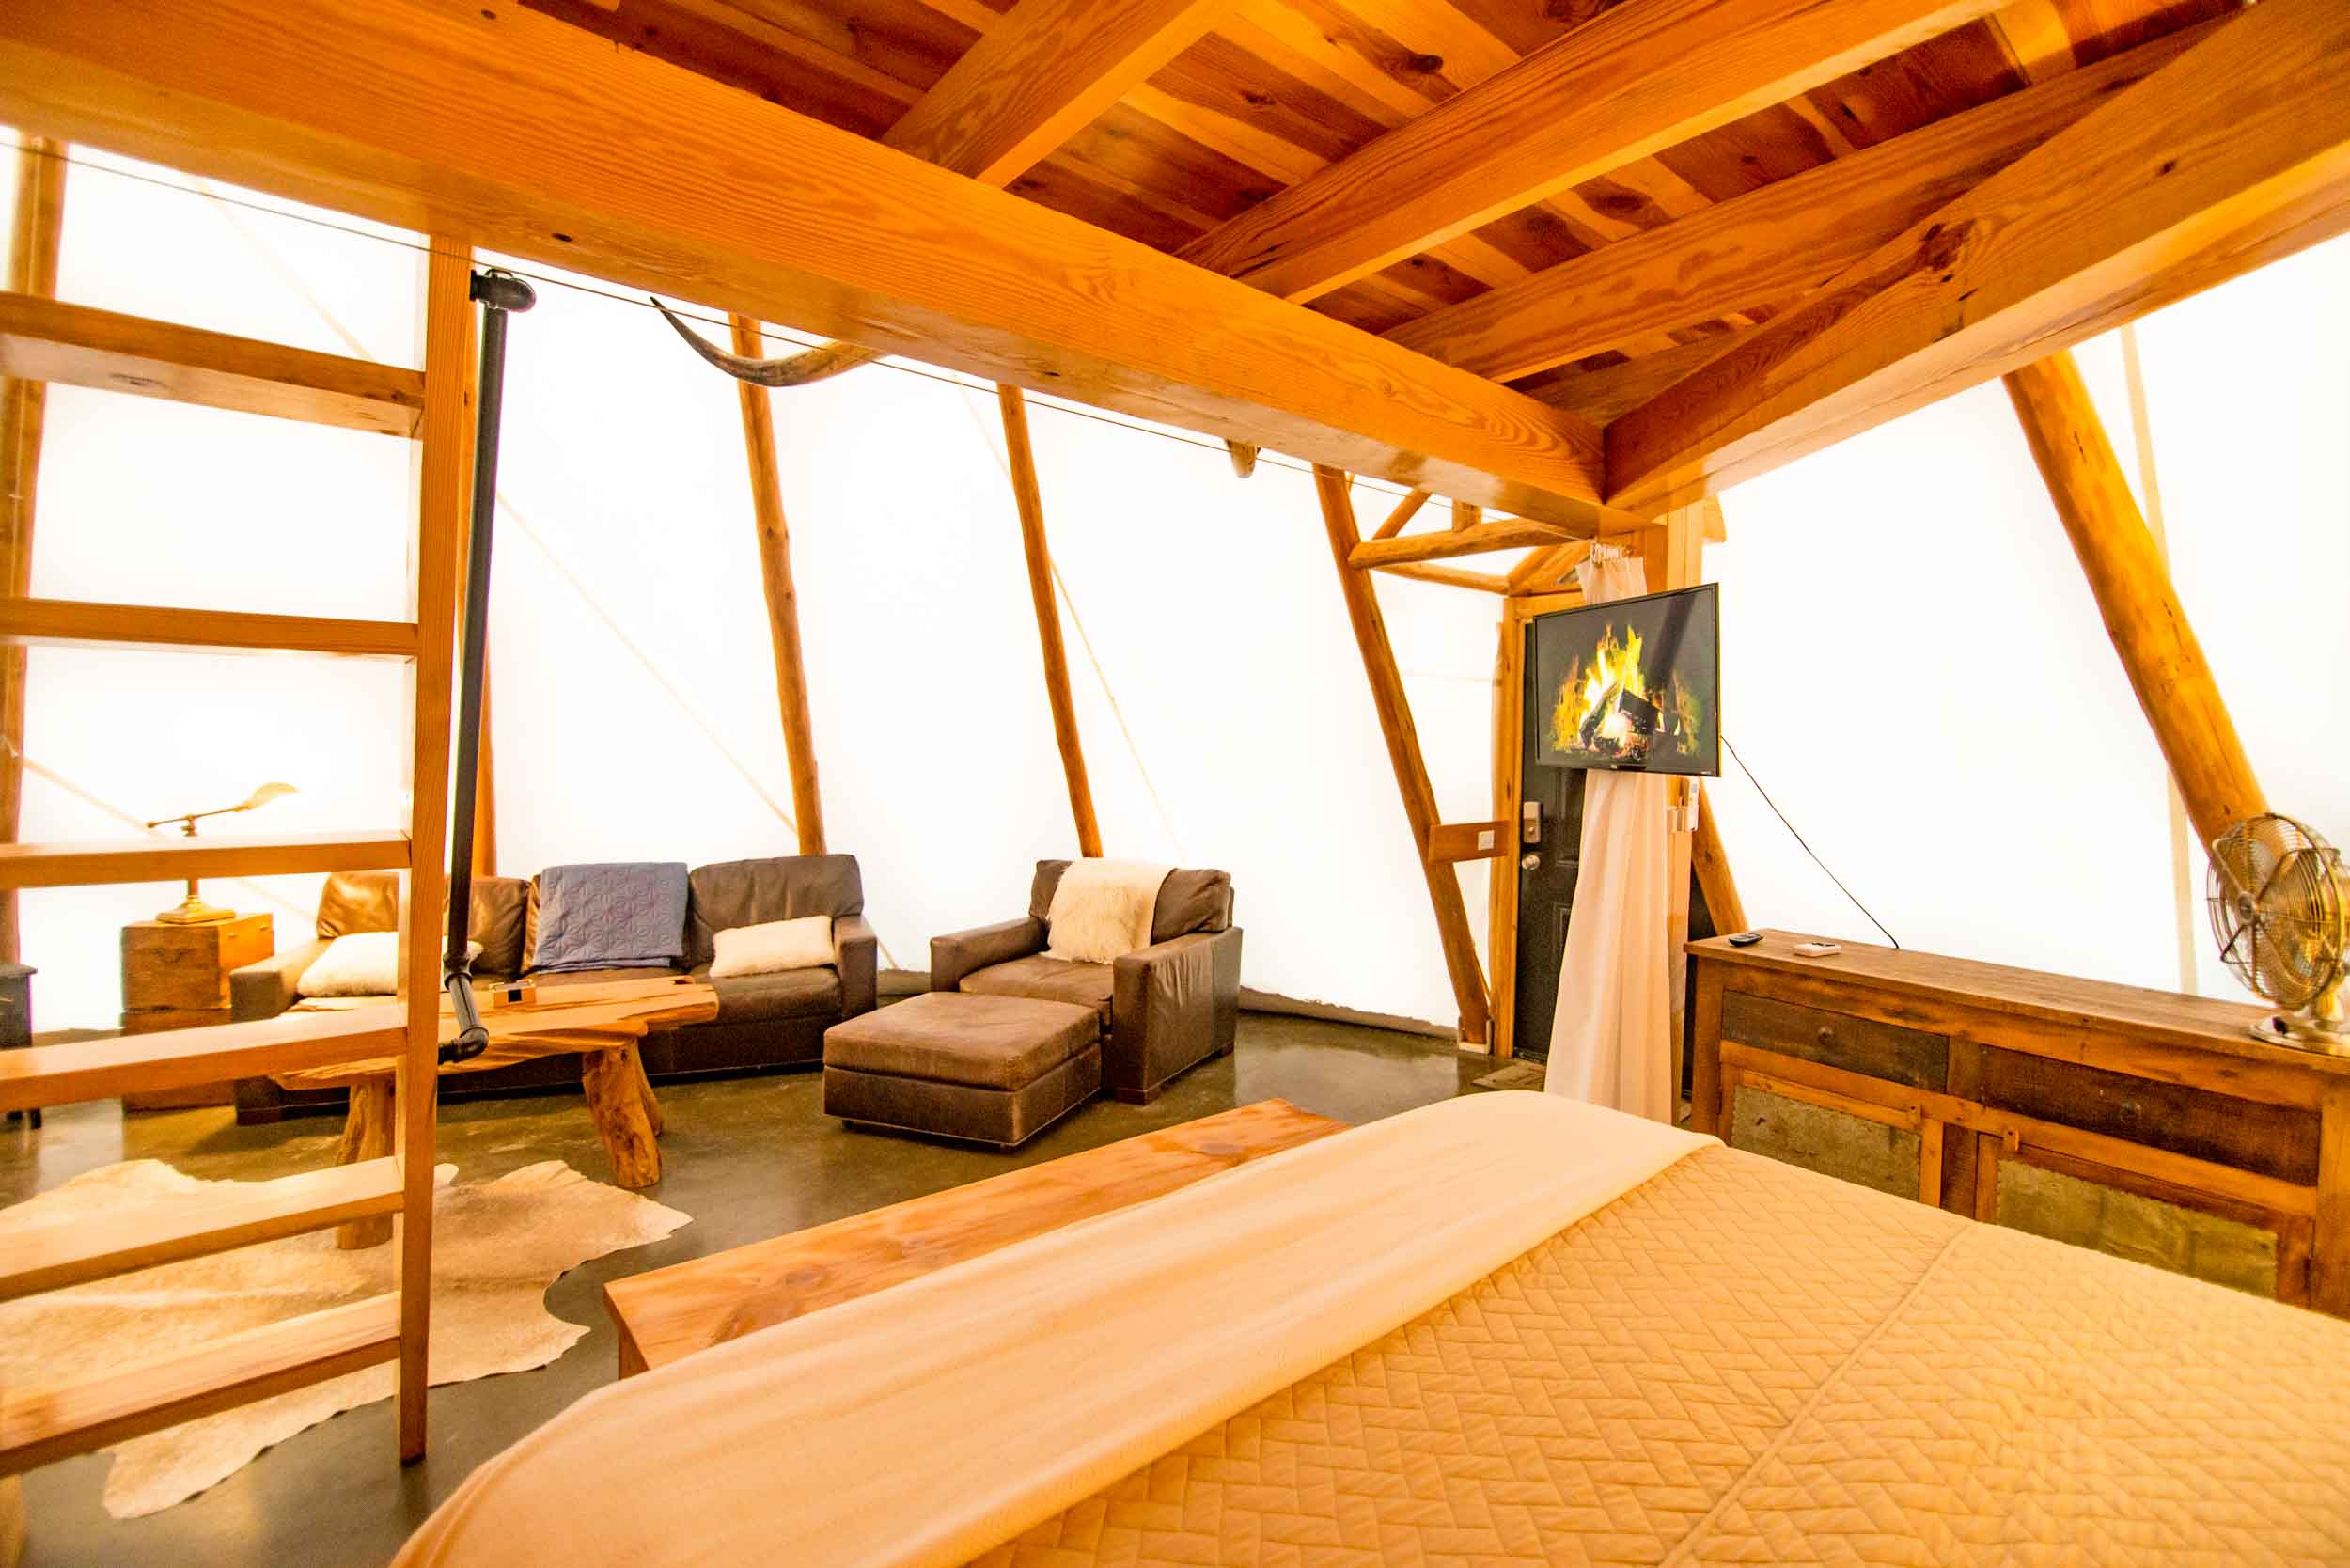 architecture+photographer+tipis+interiors+photography+airbnb+photo-5.jpg